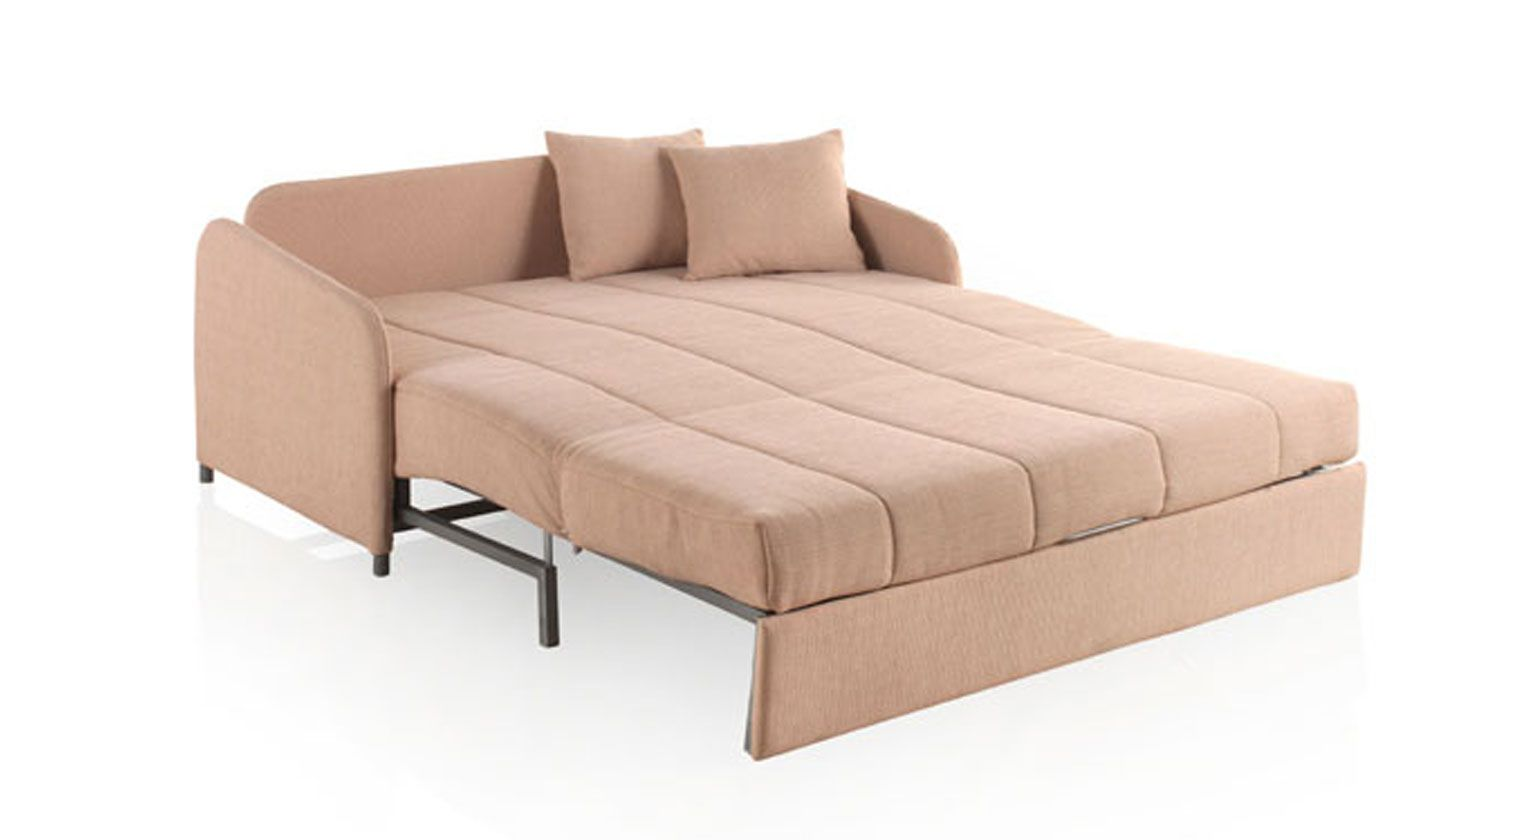 Sof cama dijon sofas cama extensible nido for Sofa 2 plazas extensible